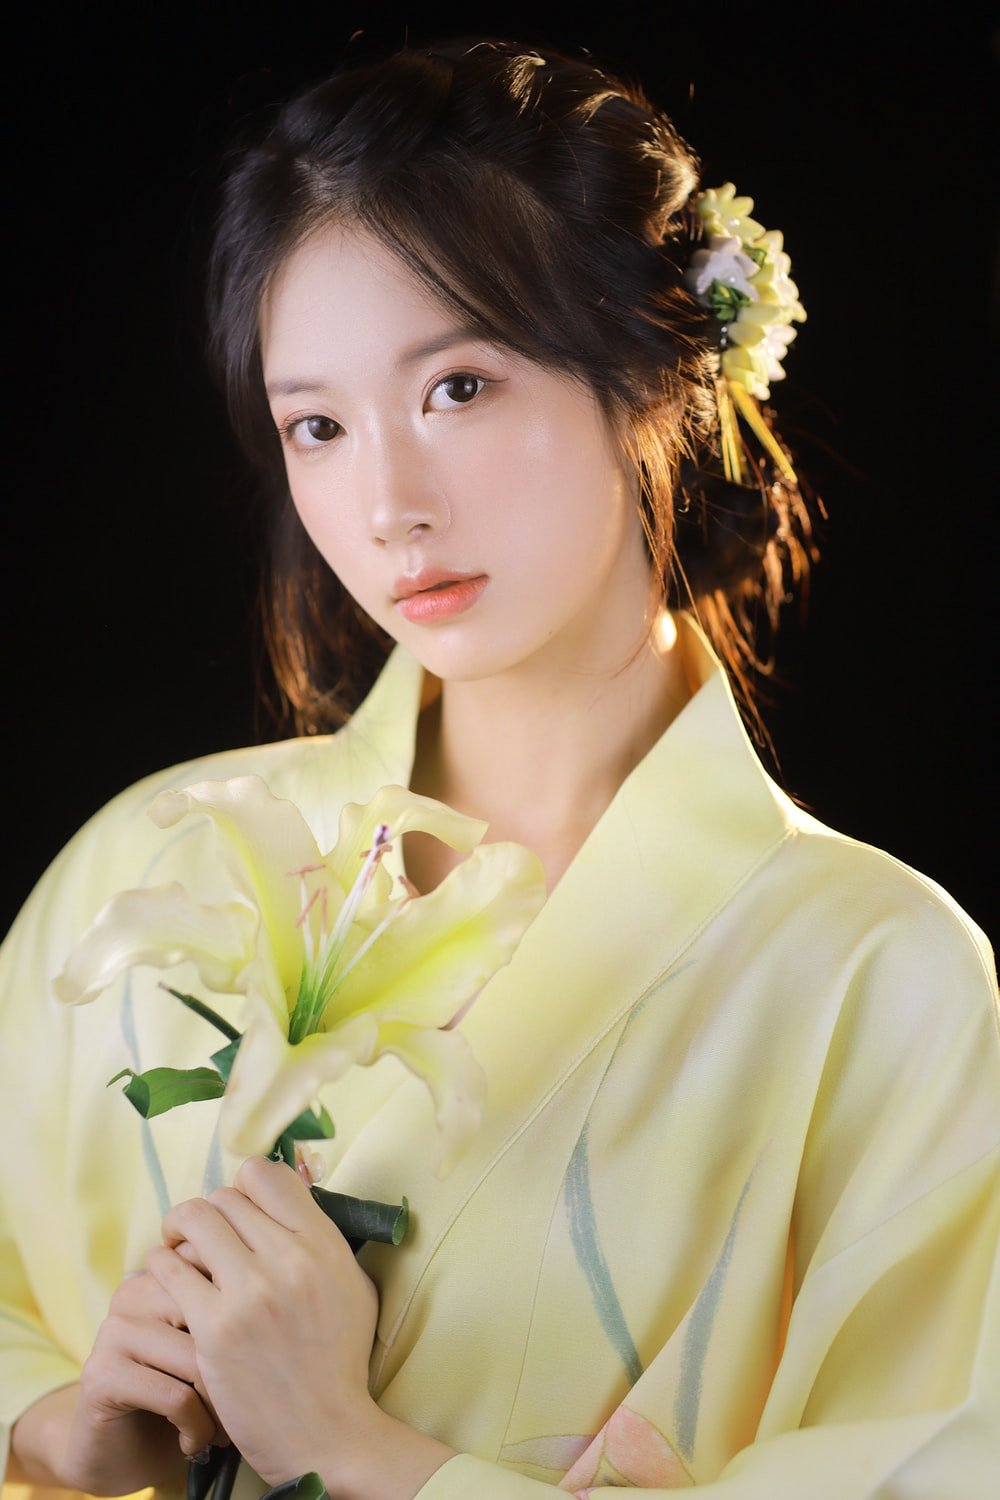 woman in white dress shirt with white flower on ear